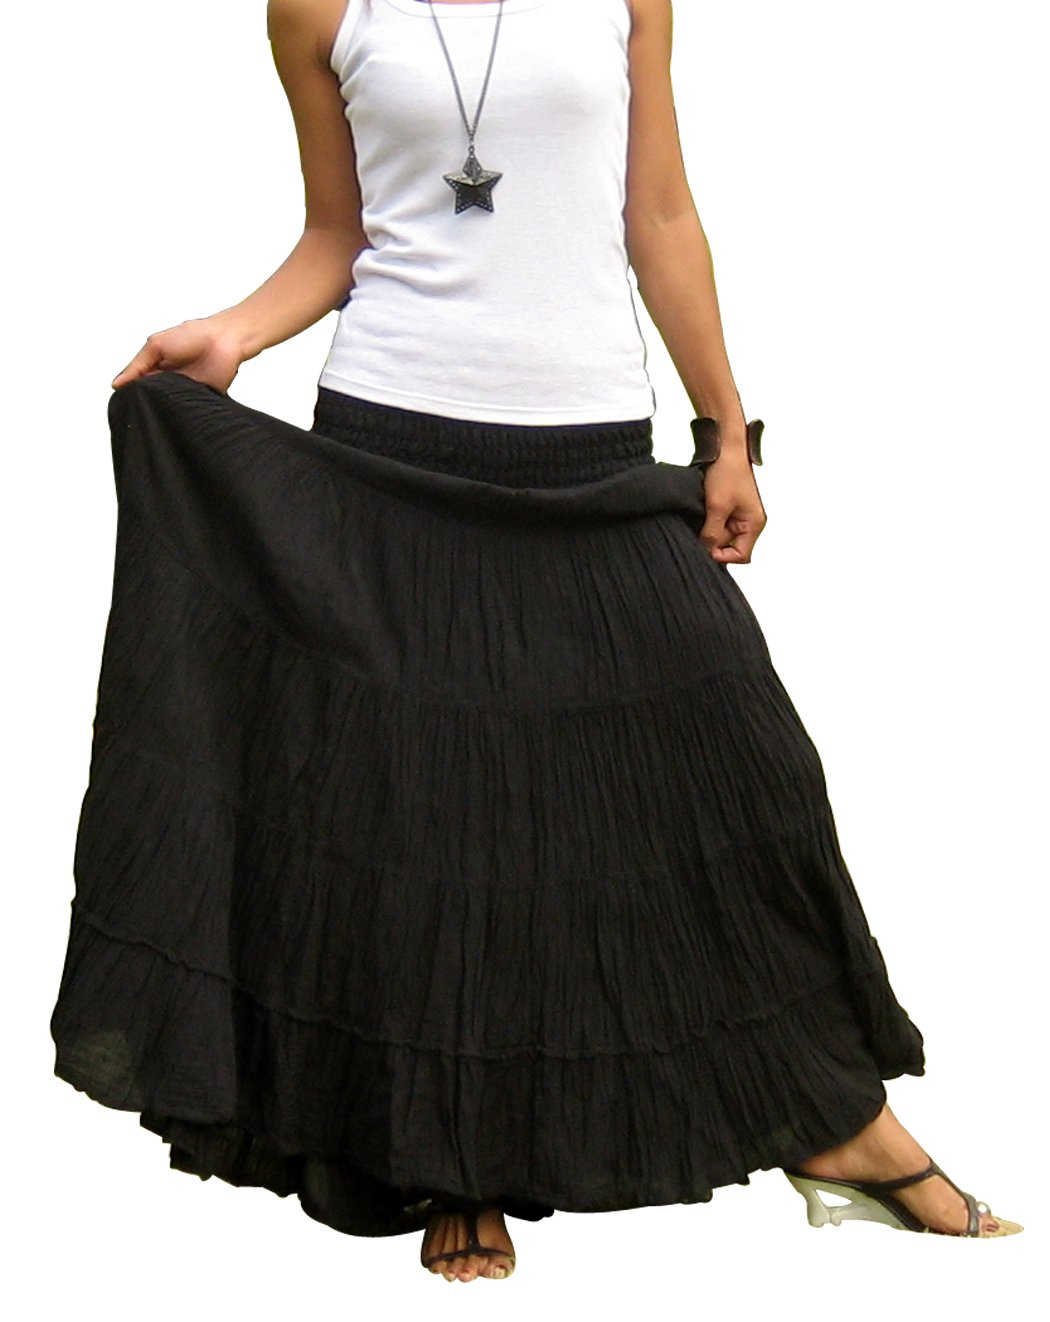 Billy's Thai Shop Women's Plus Size Long Maxi Pleated Skirt with Elastic Waist One Size Fits Most. Black